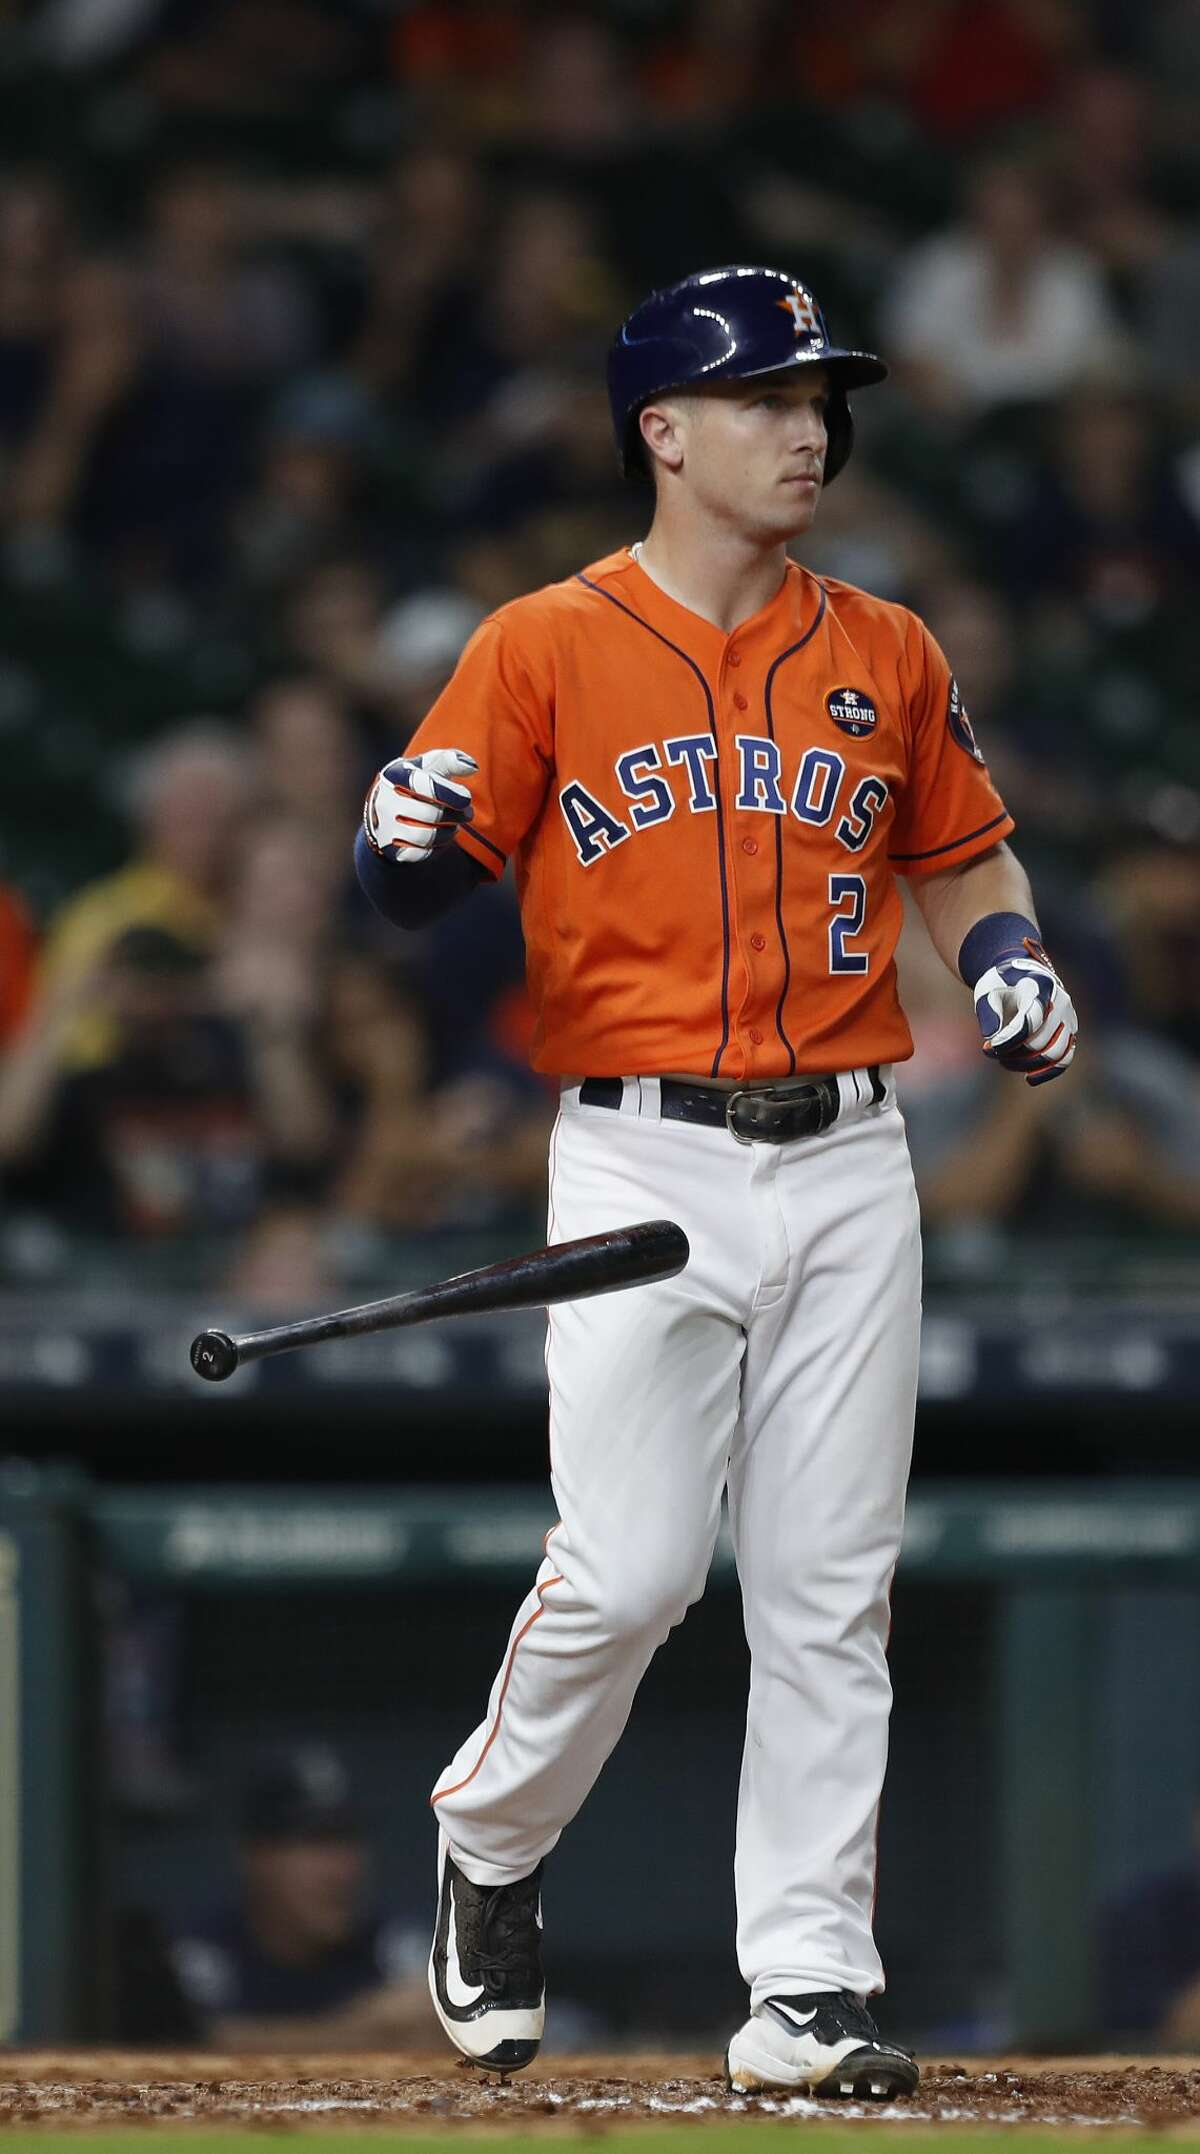 Houston Astros third baseman Alex Bregman (2) strikes out with the bases loaded during the eighth inning of an MLB baseball game at Minute Maid Park, Friday, Sept. 15, 2017, in Houston. ( Karen Warren / Houston Chronicle )